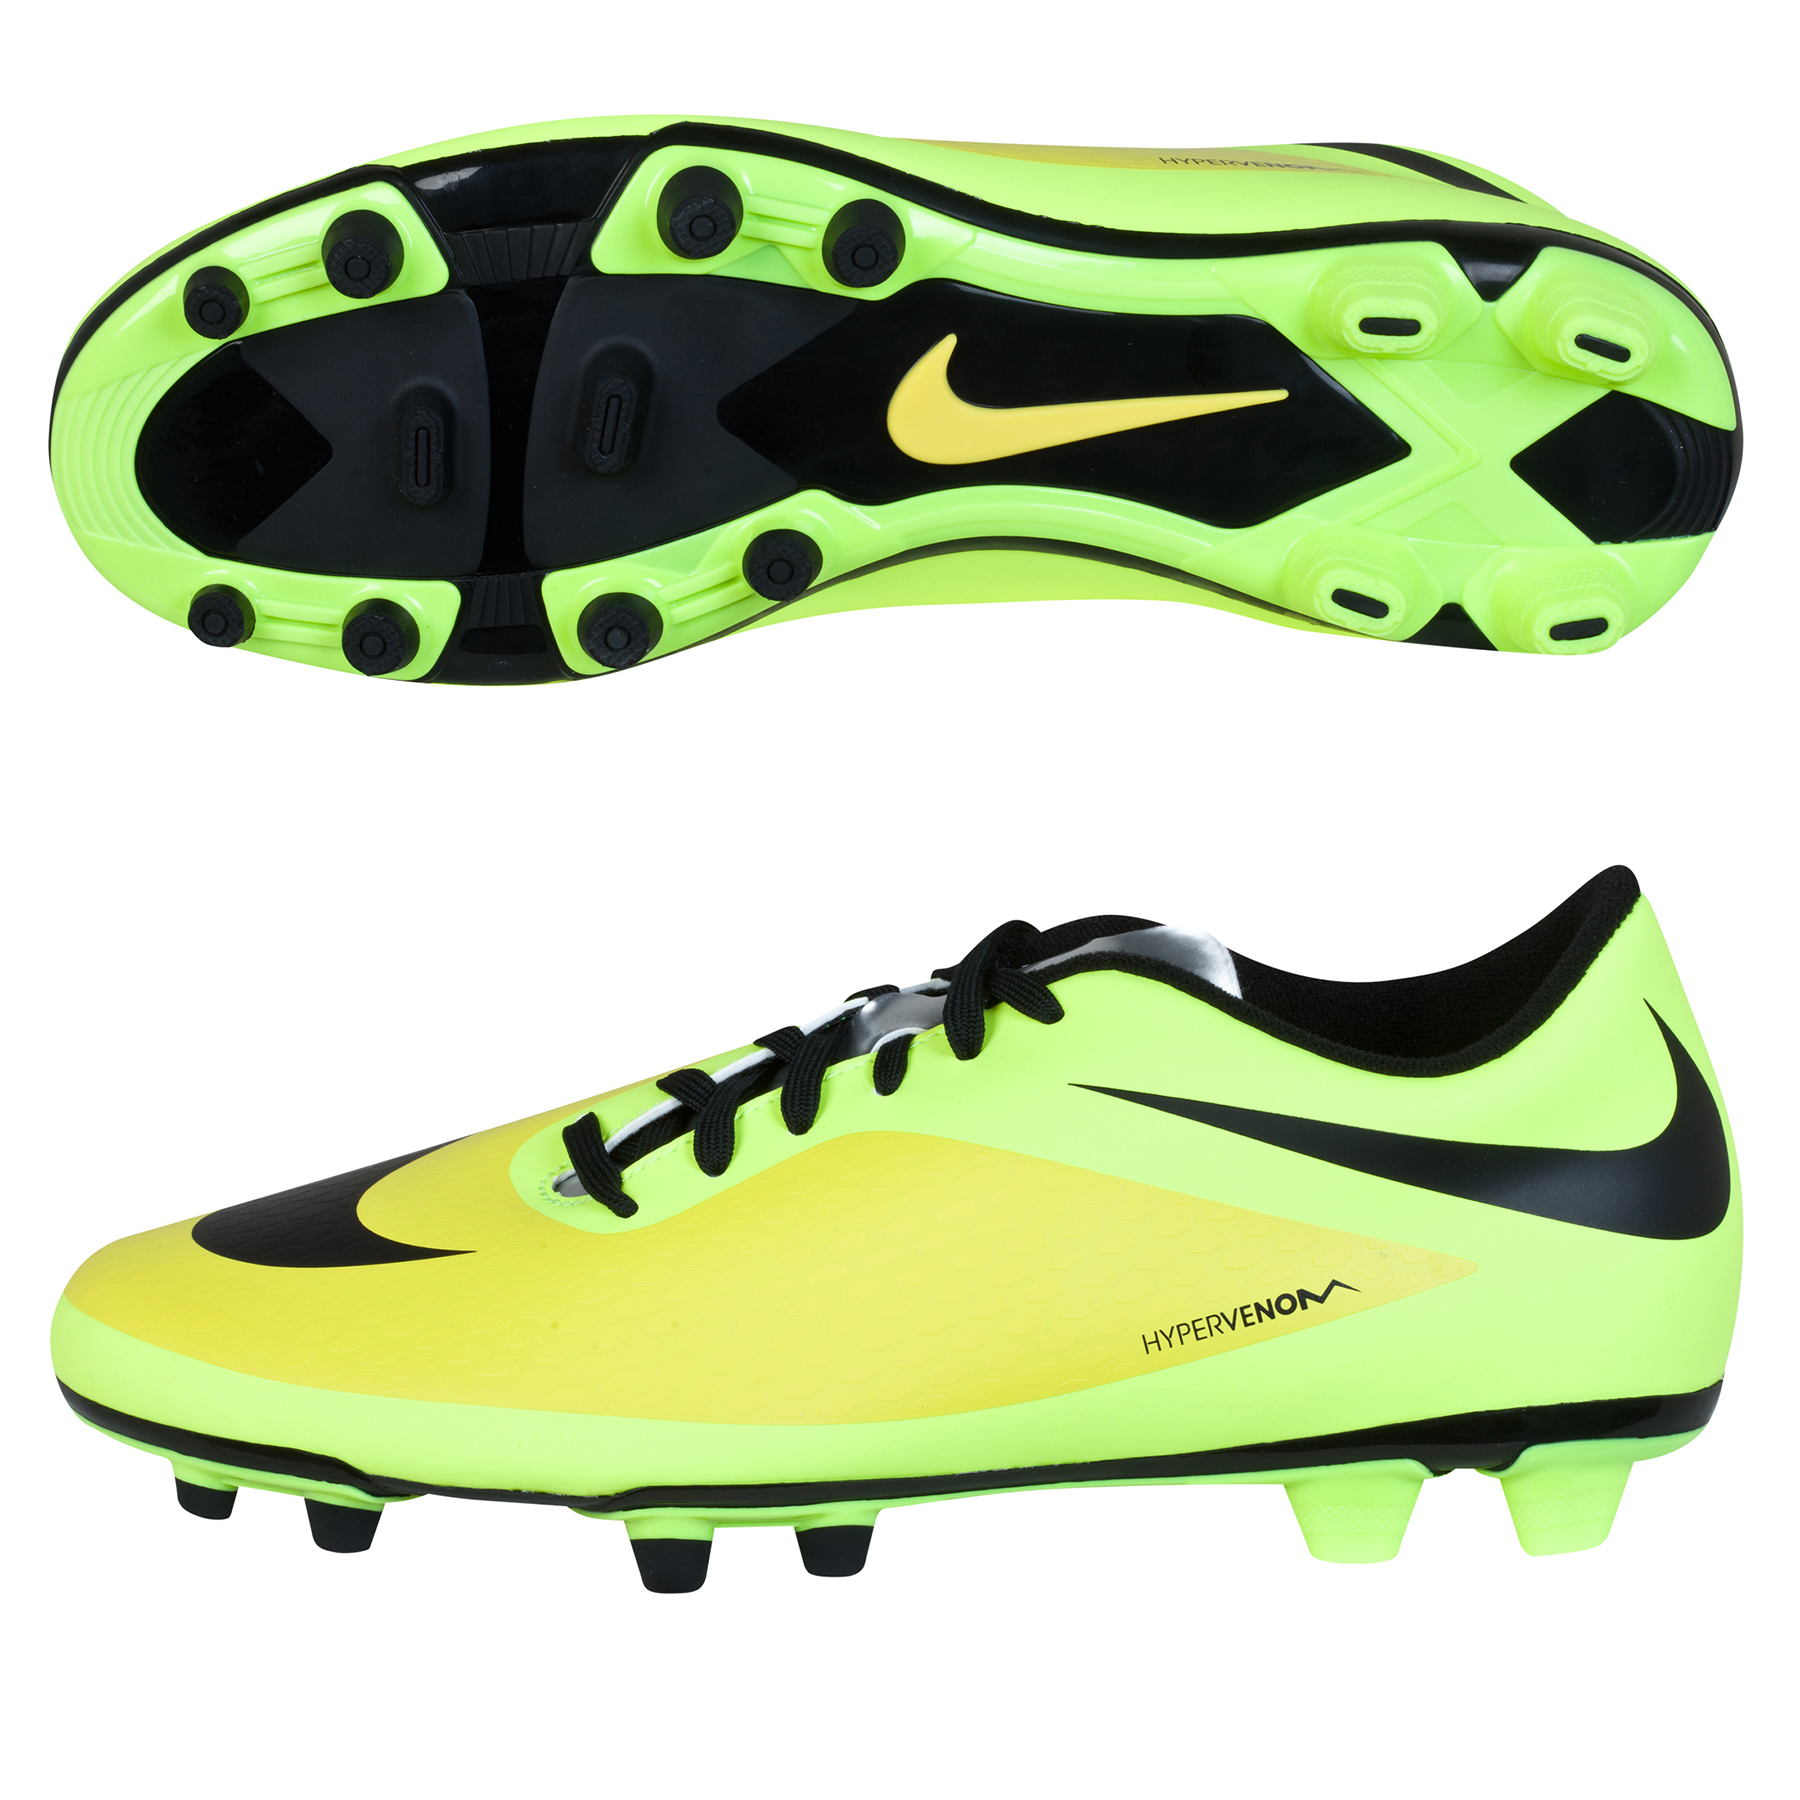 Nike Hypervenom Phade Firm Ground Football Boots Yellow